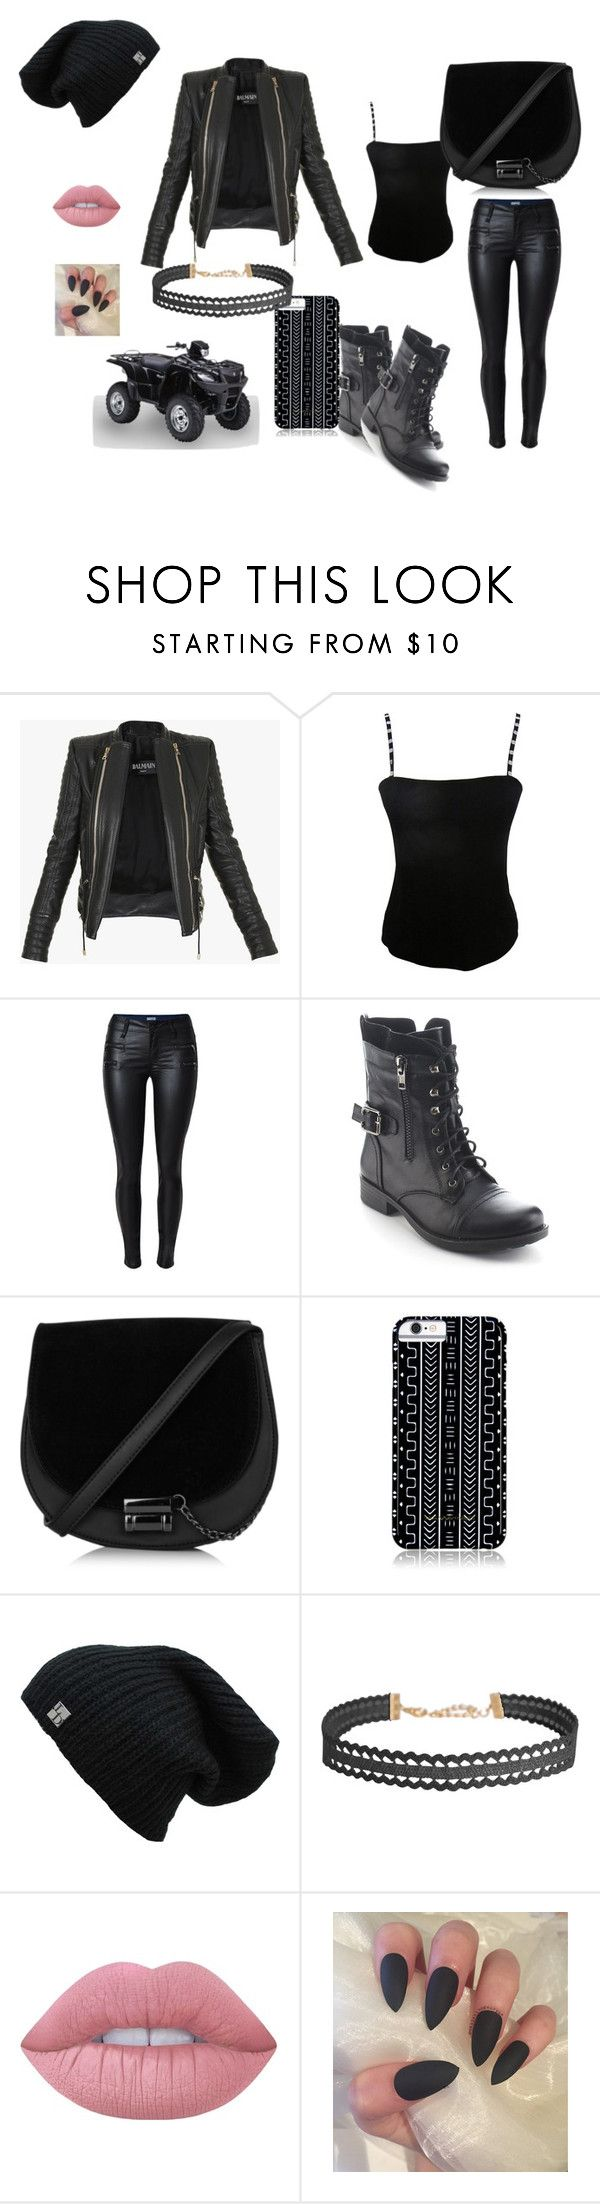 """bike riding"" by dubstepfreak on Polyvore featuring Balmain, Jean Muir, Refresh, Savannah Hayes, Humble Chic and Lime Crime"